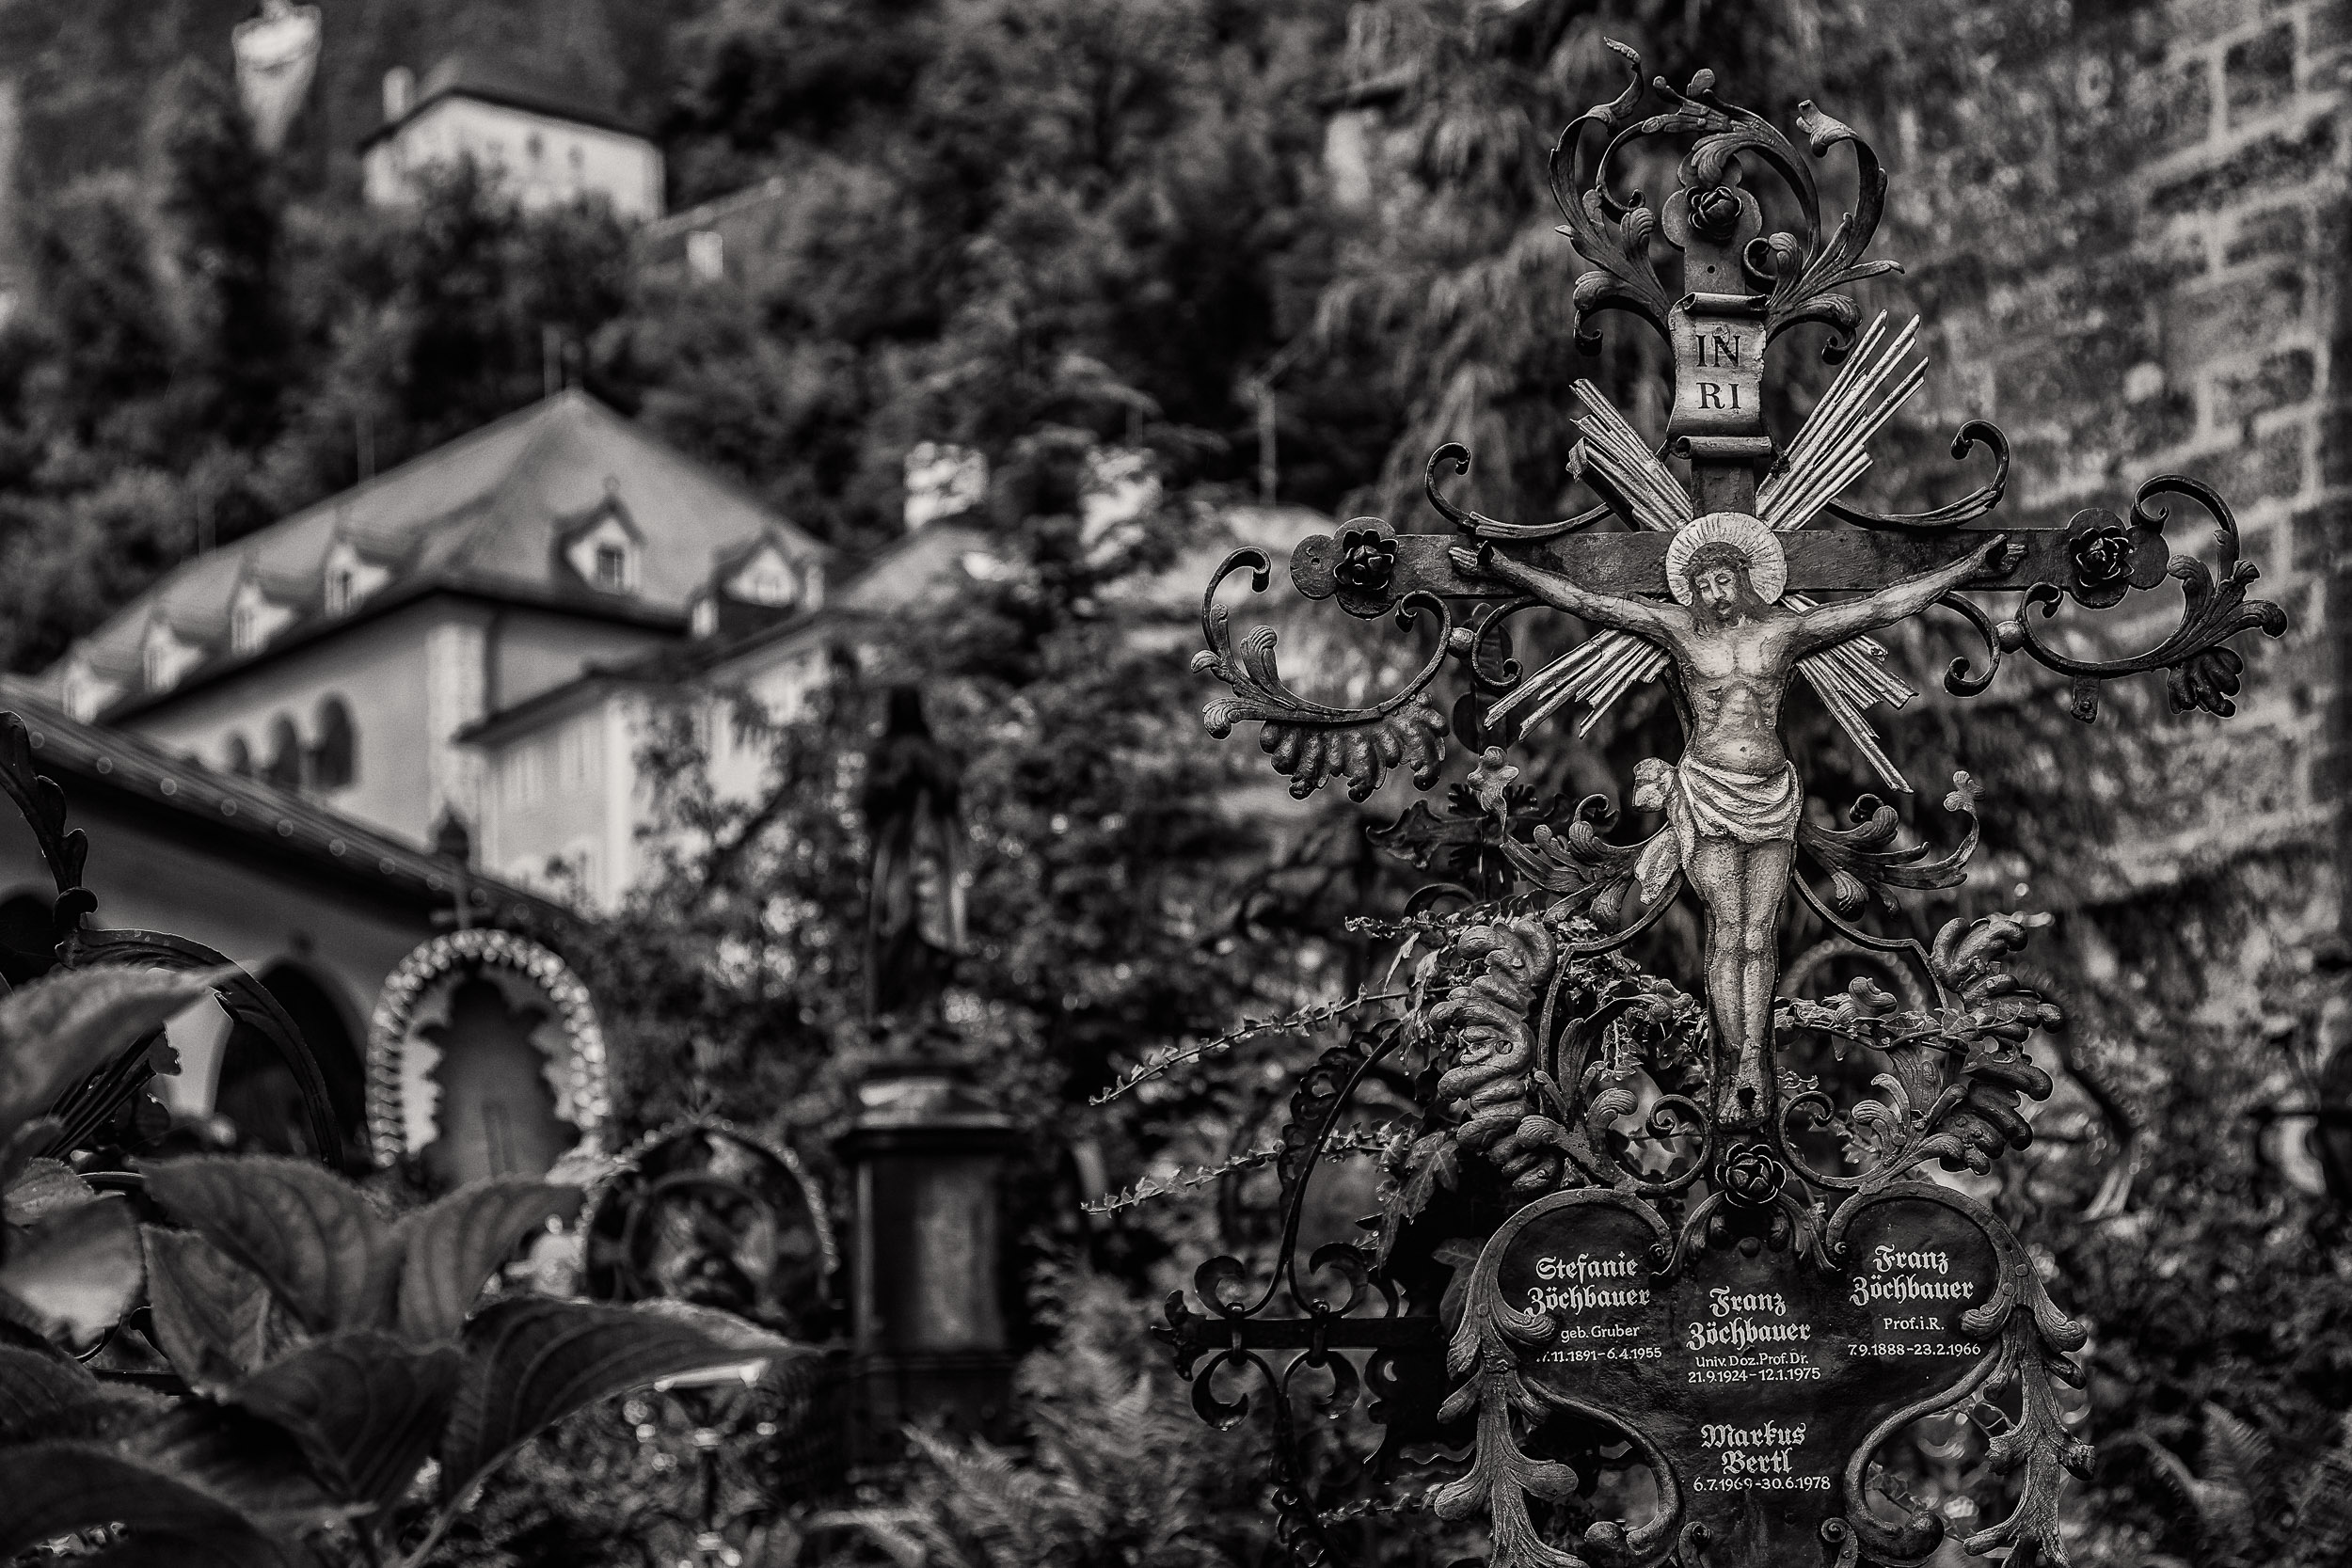 Crucifix  in the grounds of the historic  St. Peter's Cemetery  in  Salzburg, Austria .